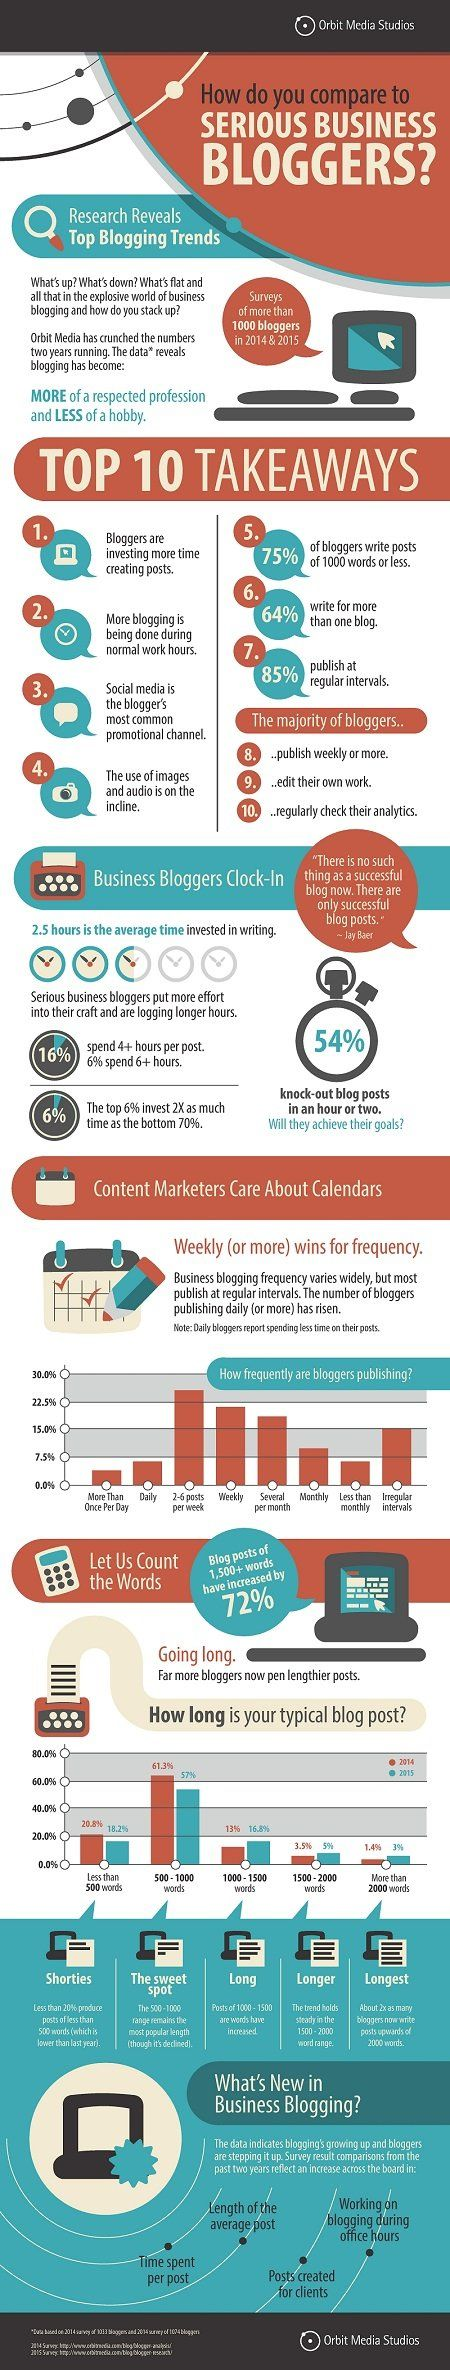 How to you rate compared to other bloggers and content markers? This infographic explains.